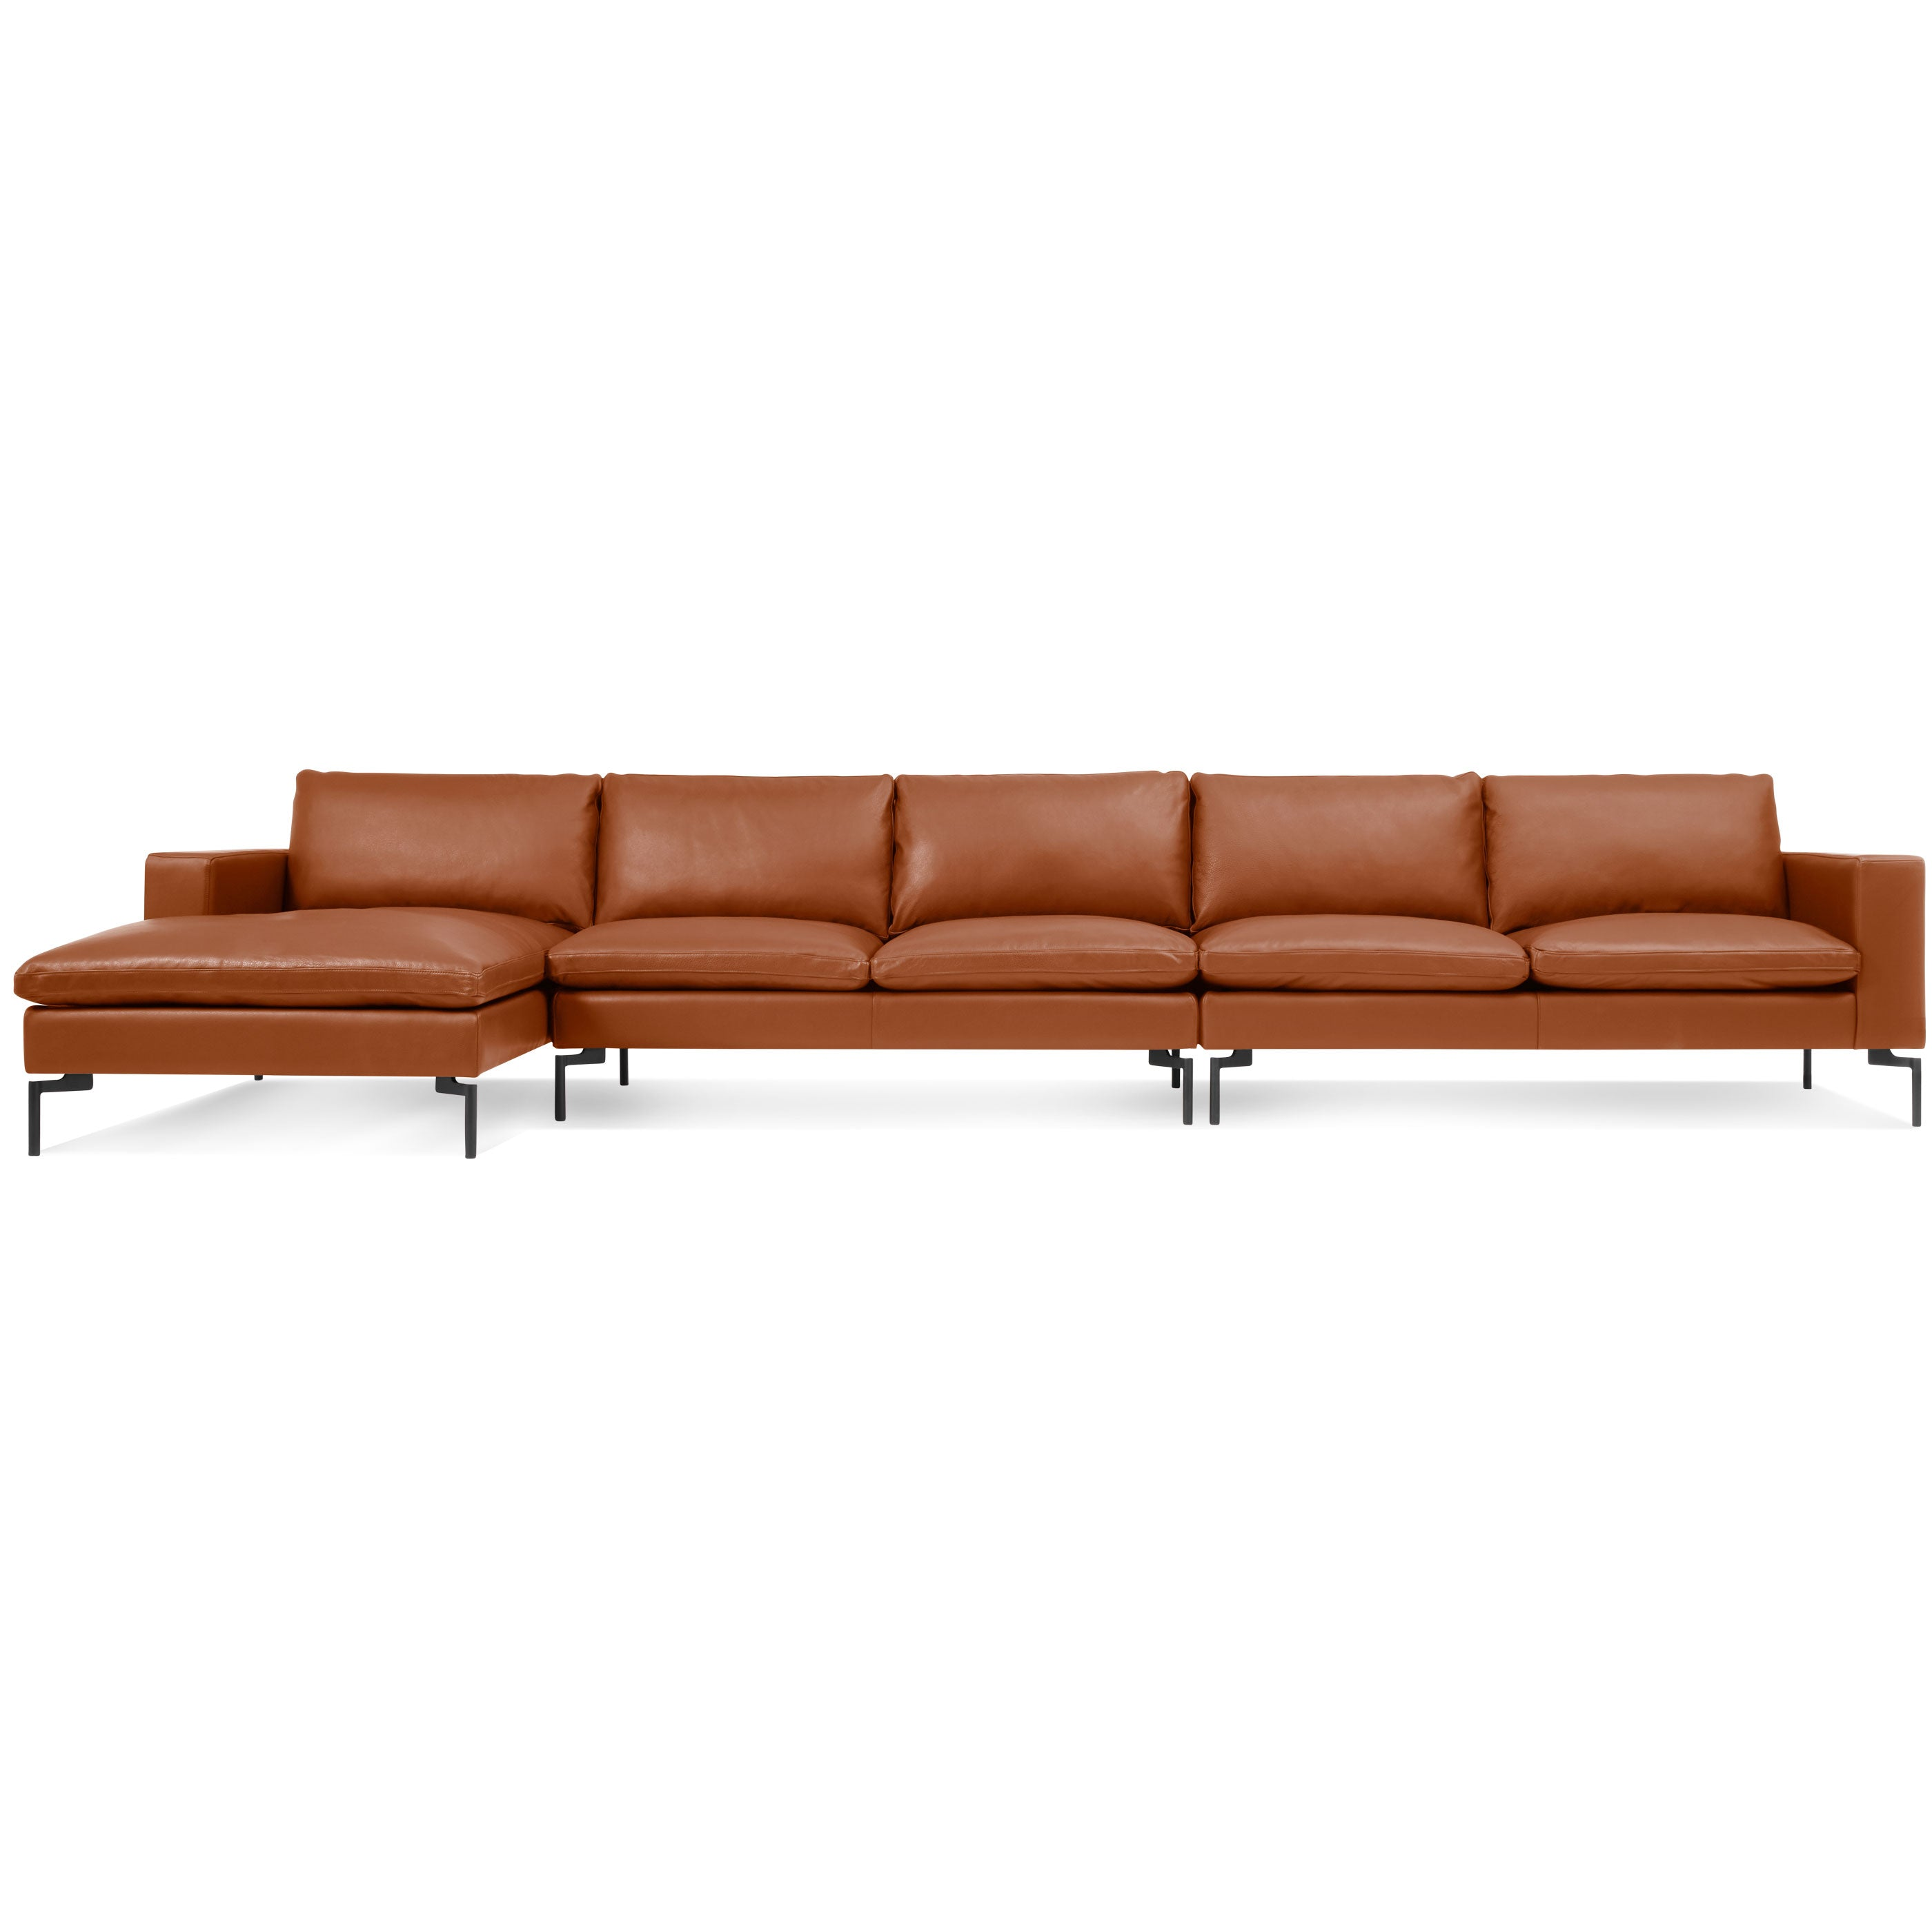 "New Standard 165"" Leather Sofa Sectional"